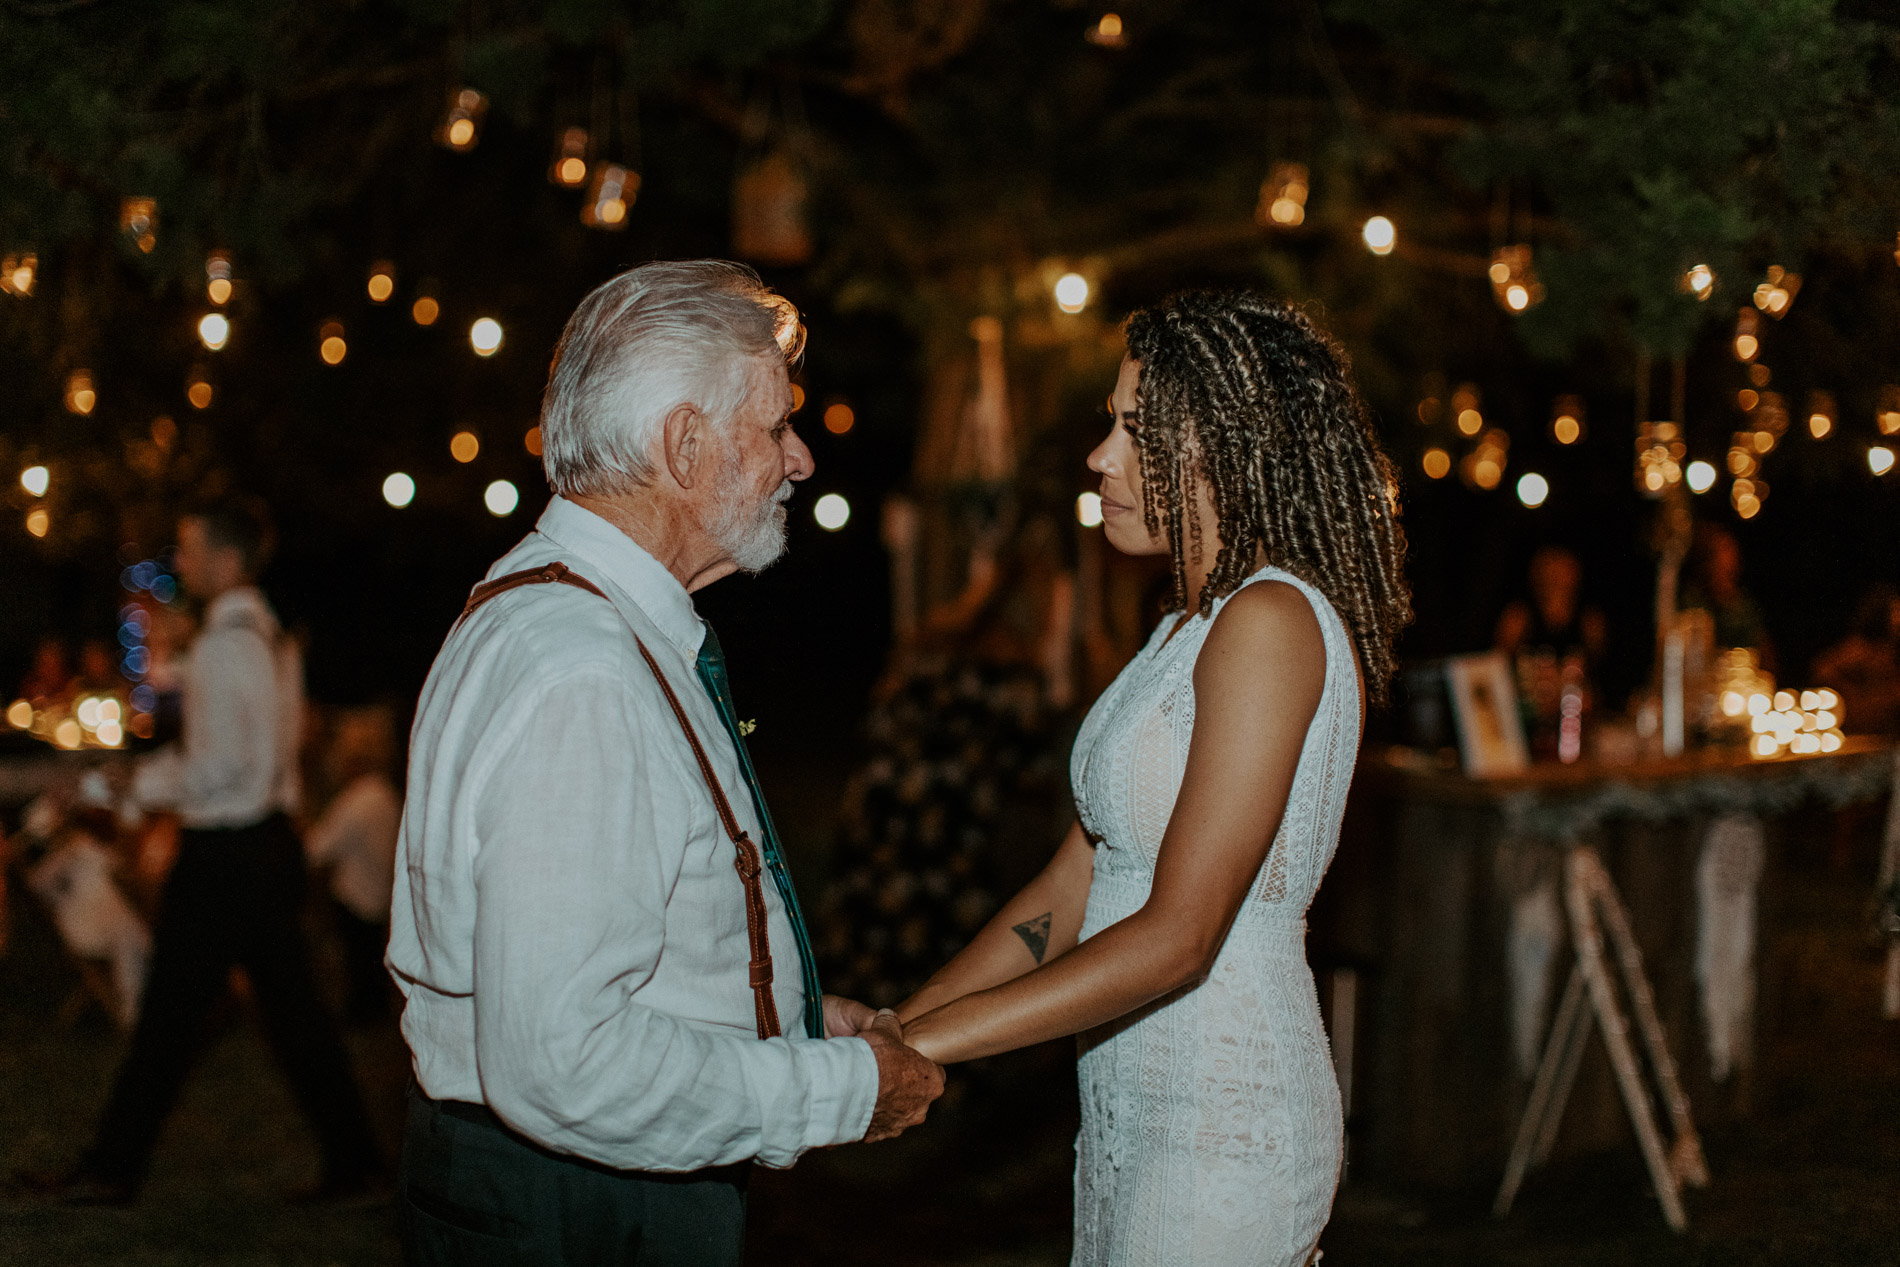 Bride having an emotional moment with her grandpa at her wedding